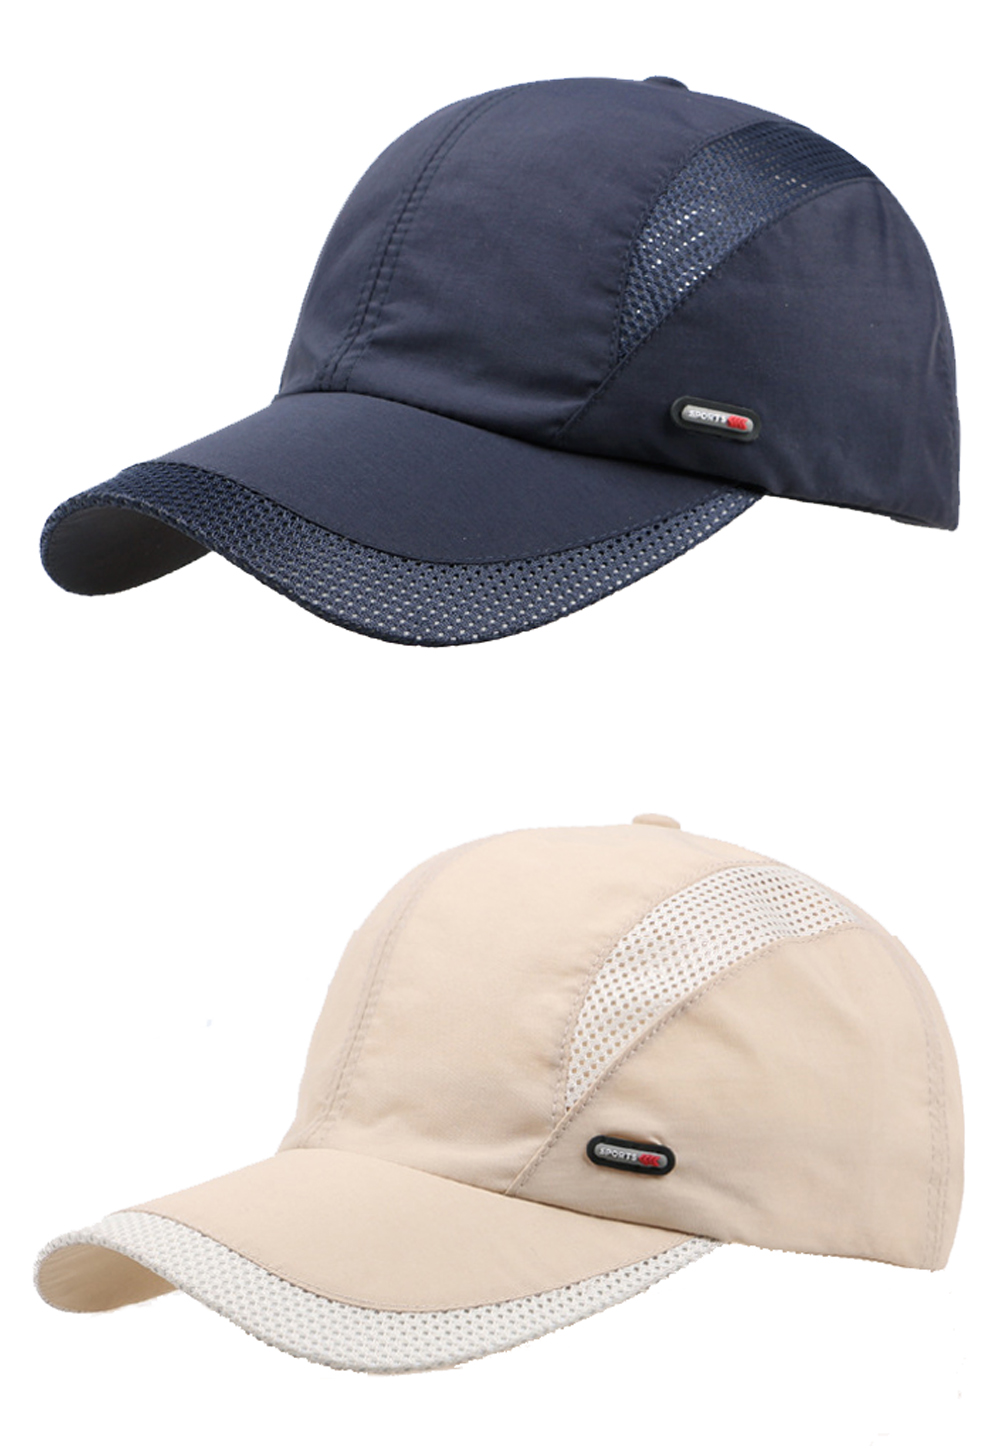 Cool Comfort Breathable Quick Dry Cap - Blue Cap and Beige Cap Front Angle Side Views